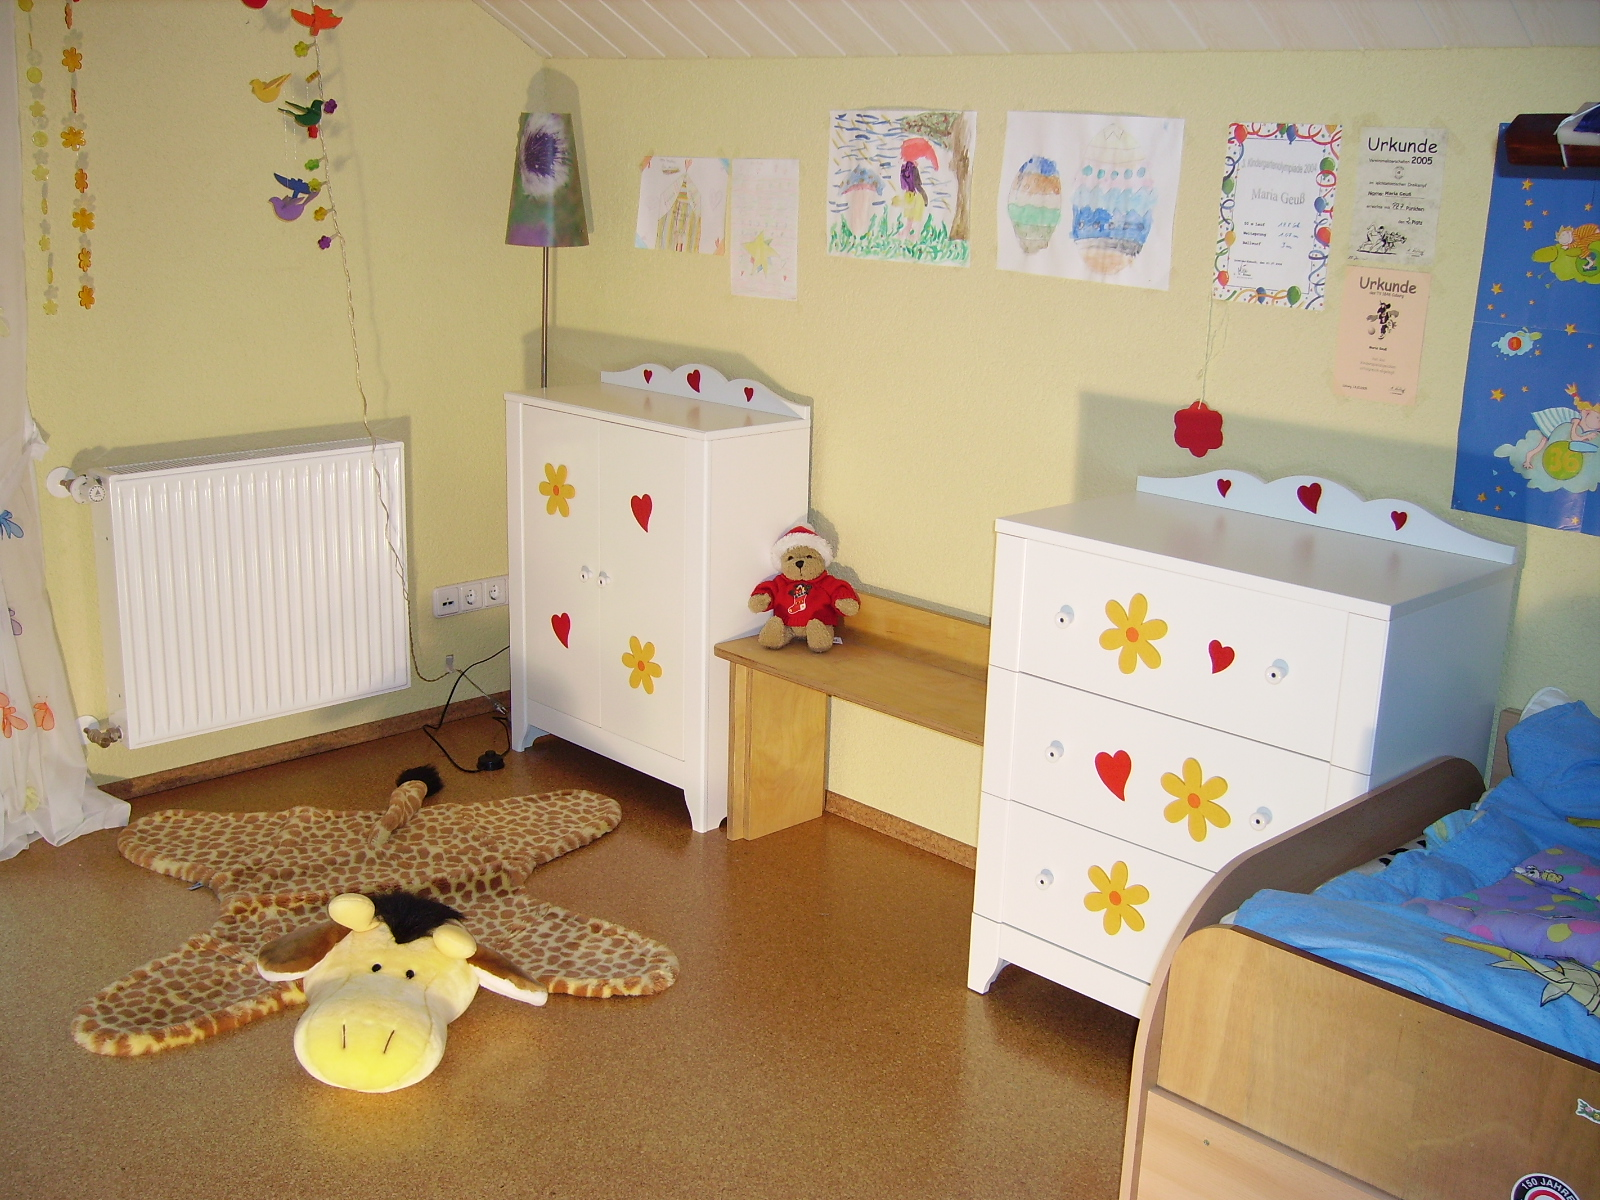 Kinderzimmer Gestalten Pictures to pin on Pinterest